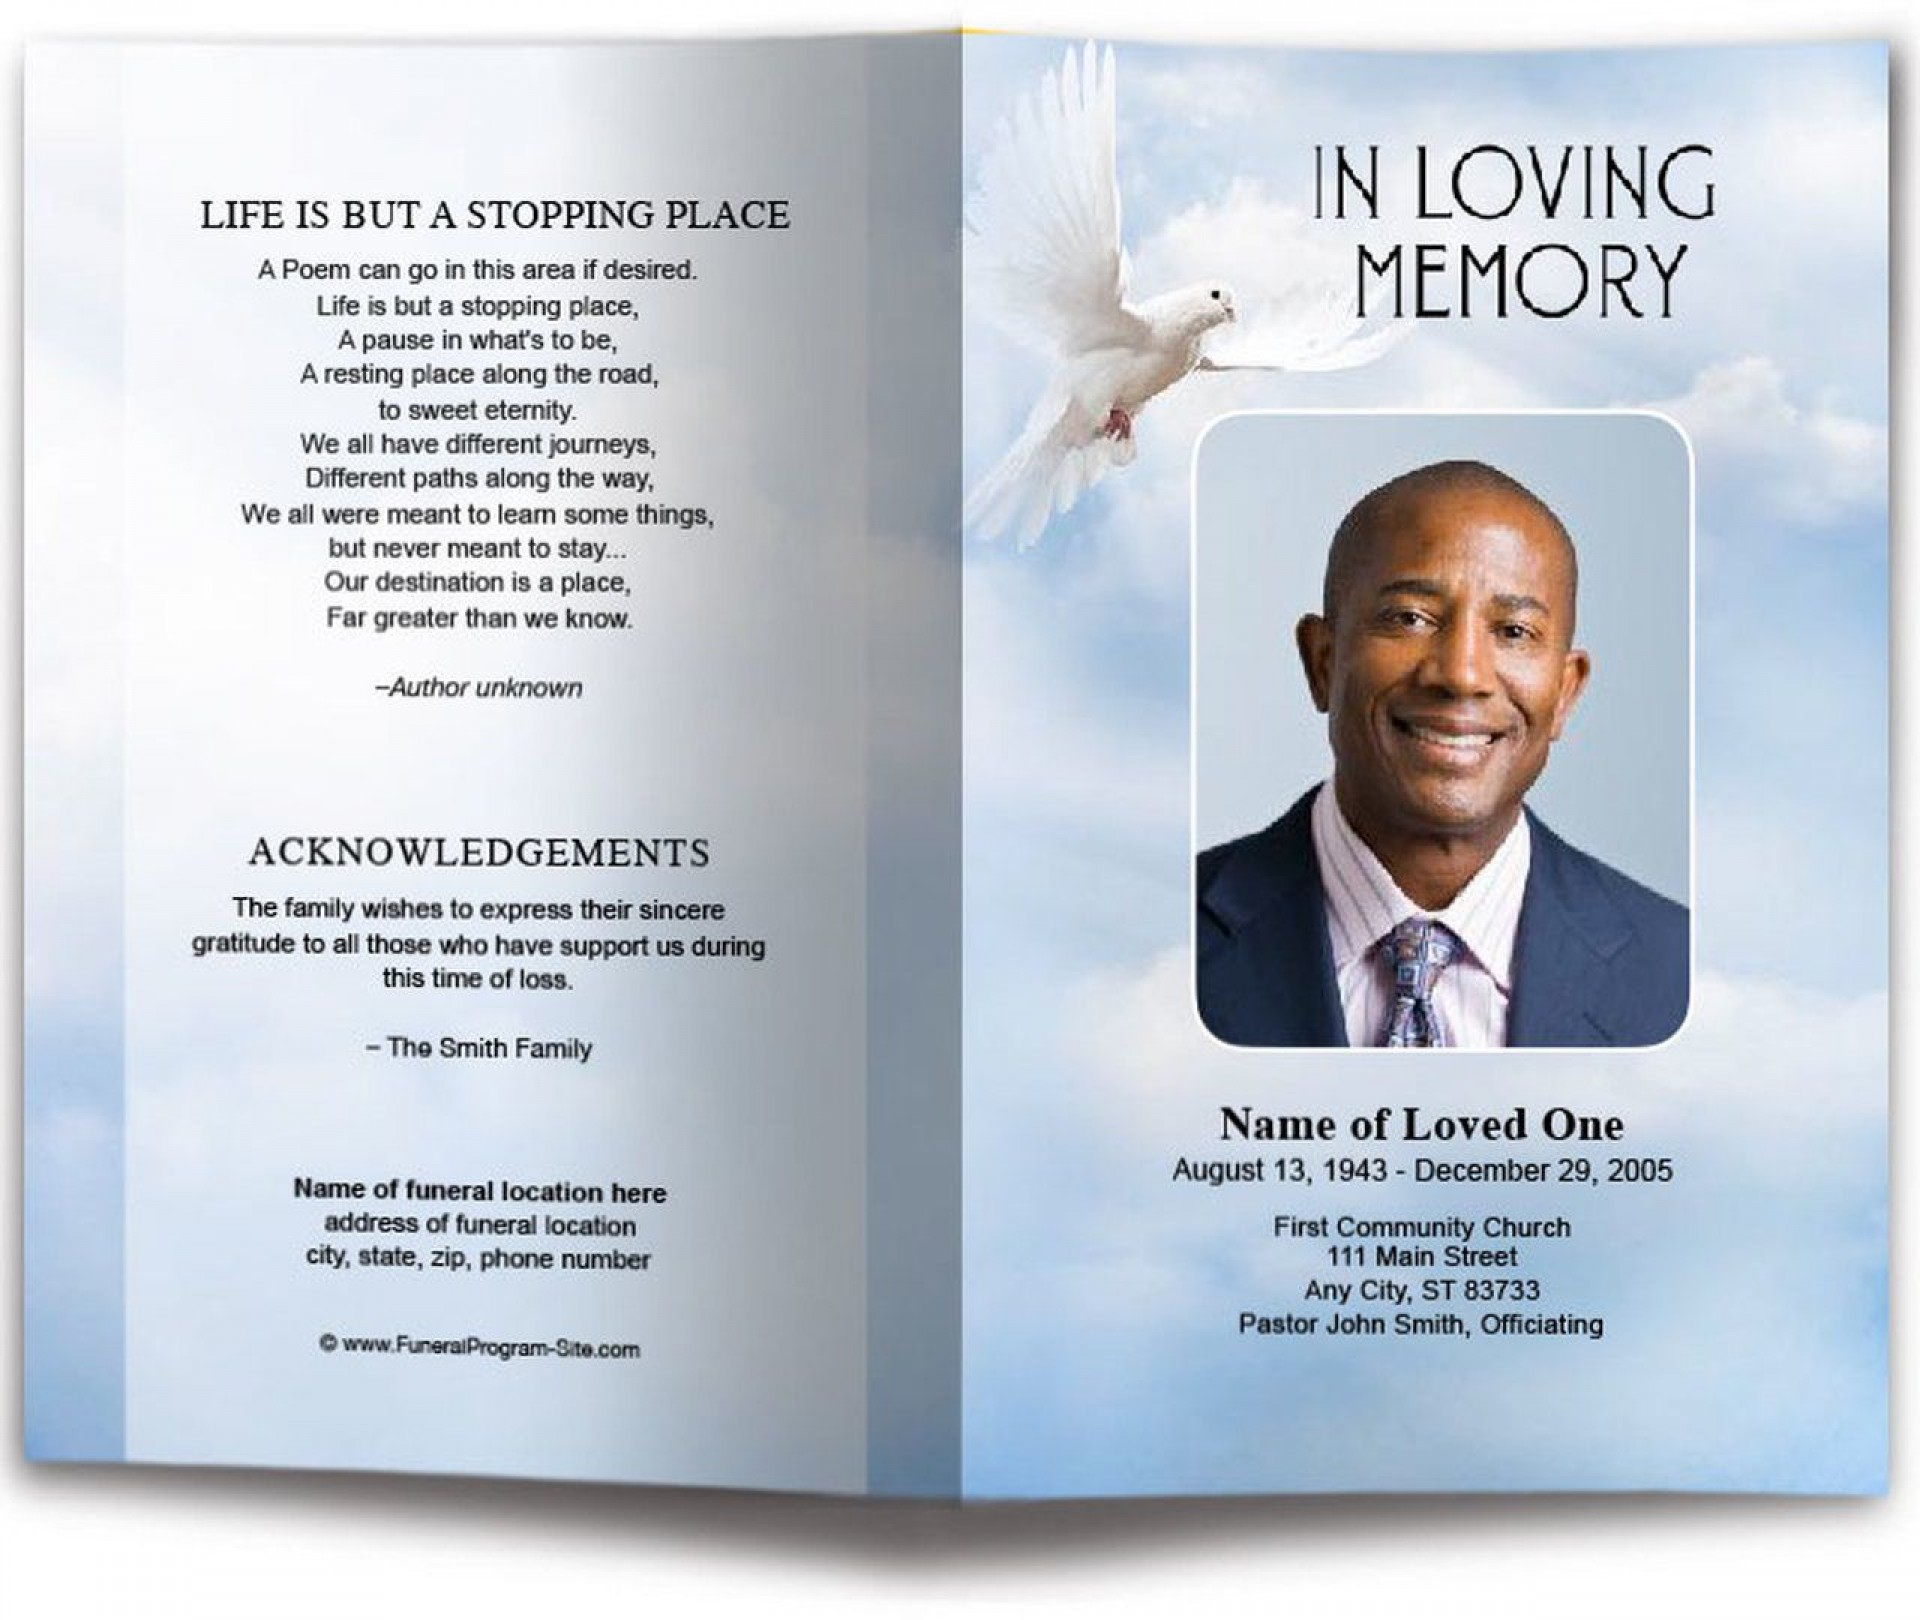 010 Incredible Funeral Program Template Free High Def  Printable Design1920